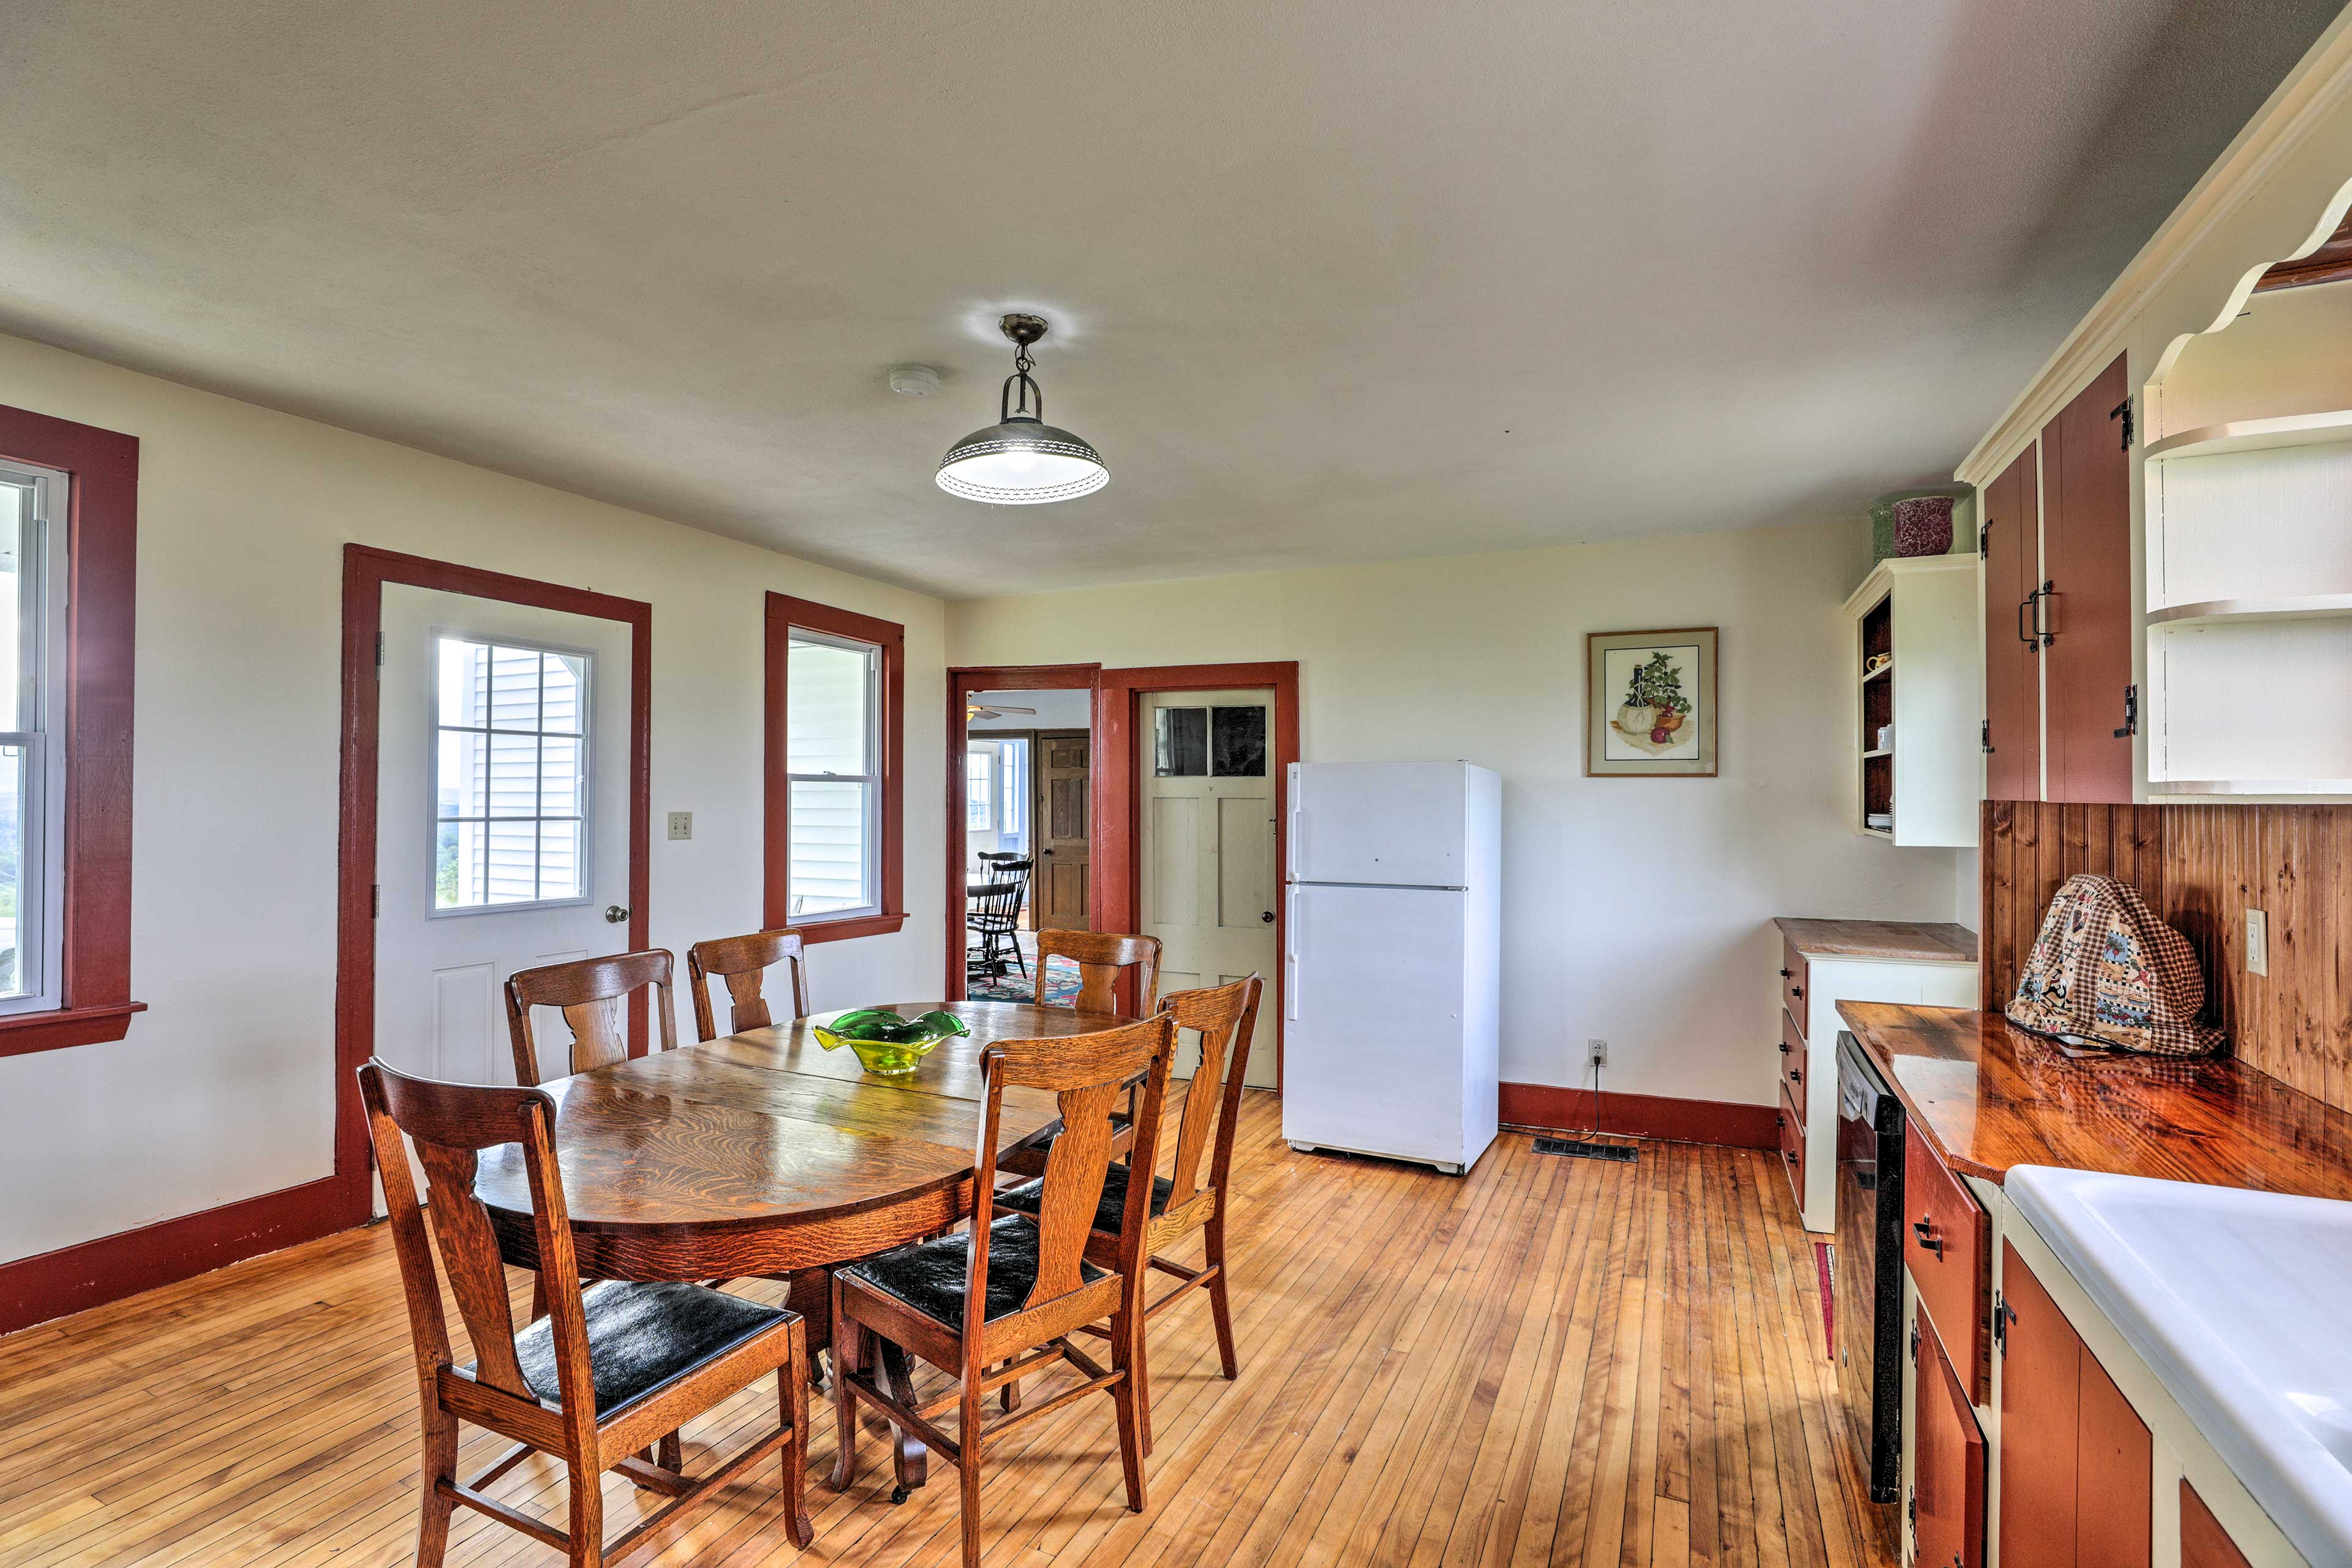 The kitchen has a 6-person table that is perfect for morning coffee.